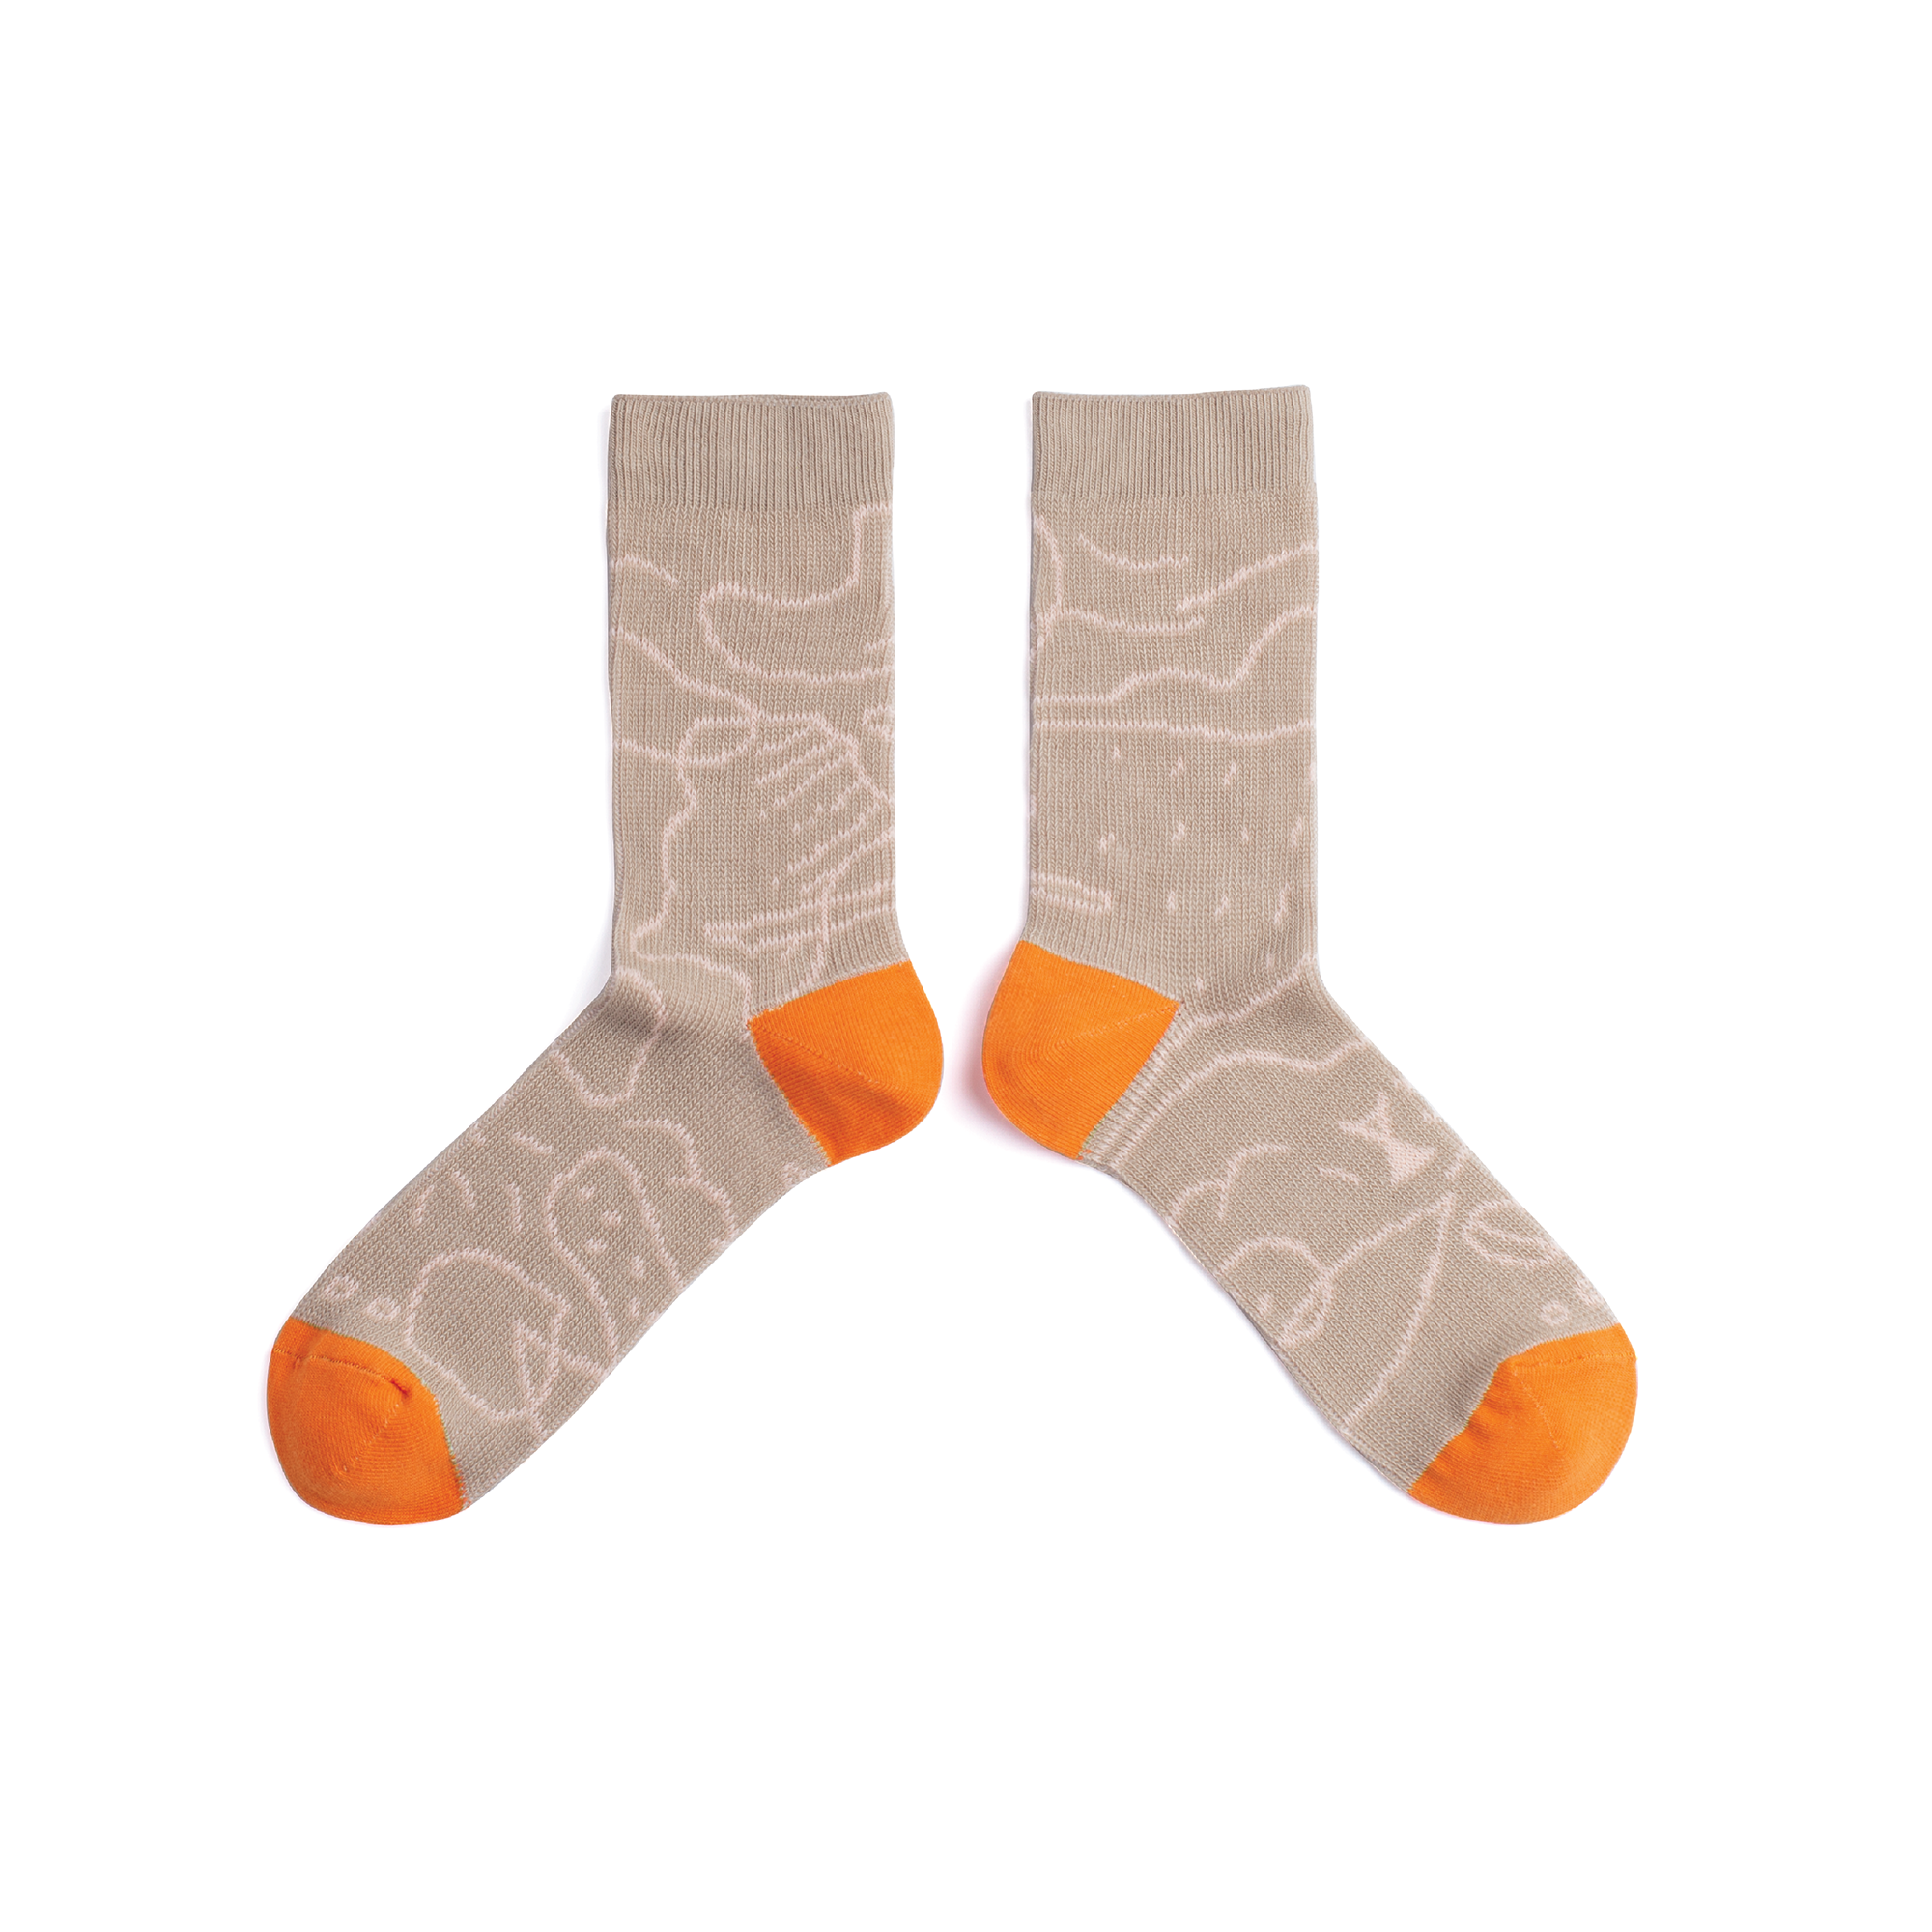 { The kawan project } Luna Island : Khaki & Orange Socks